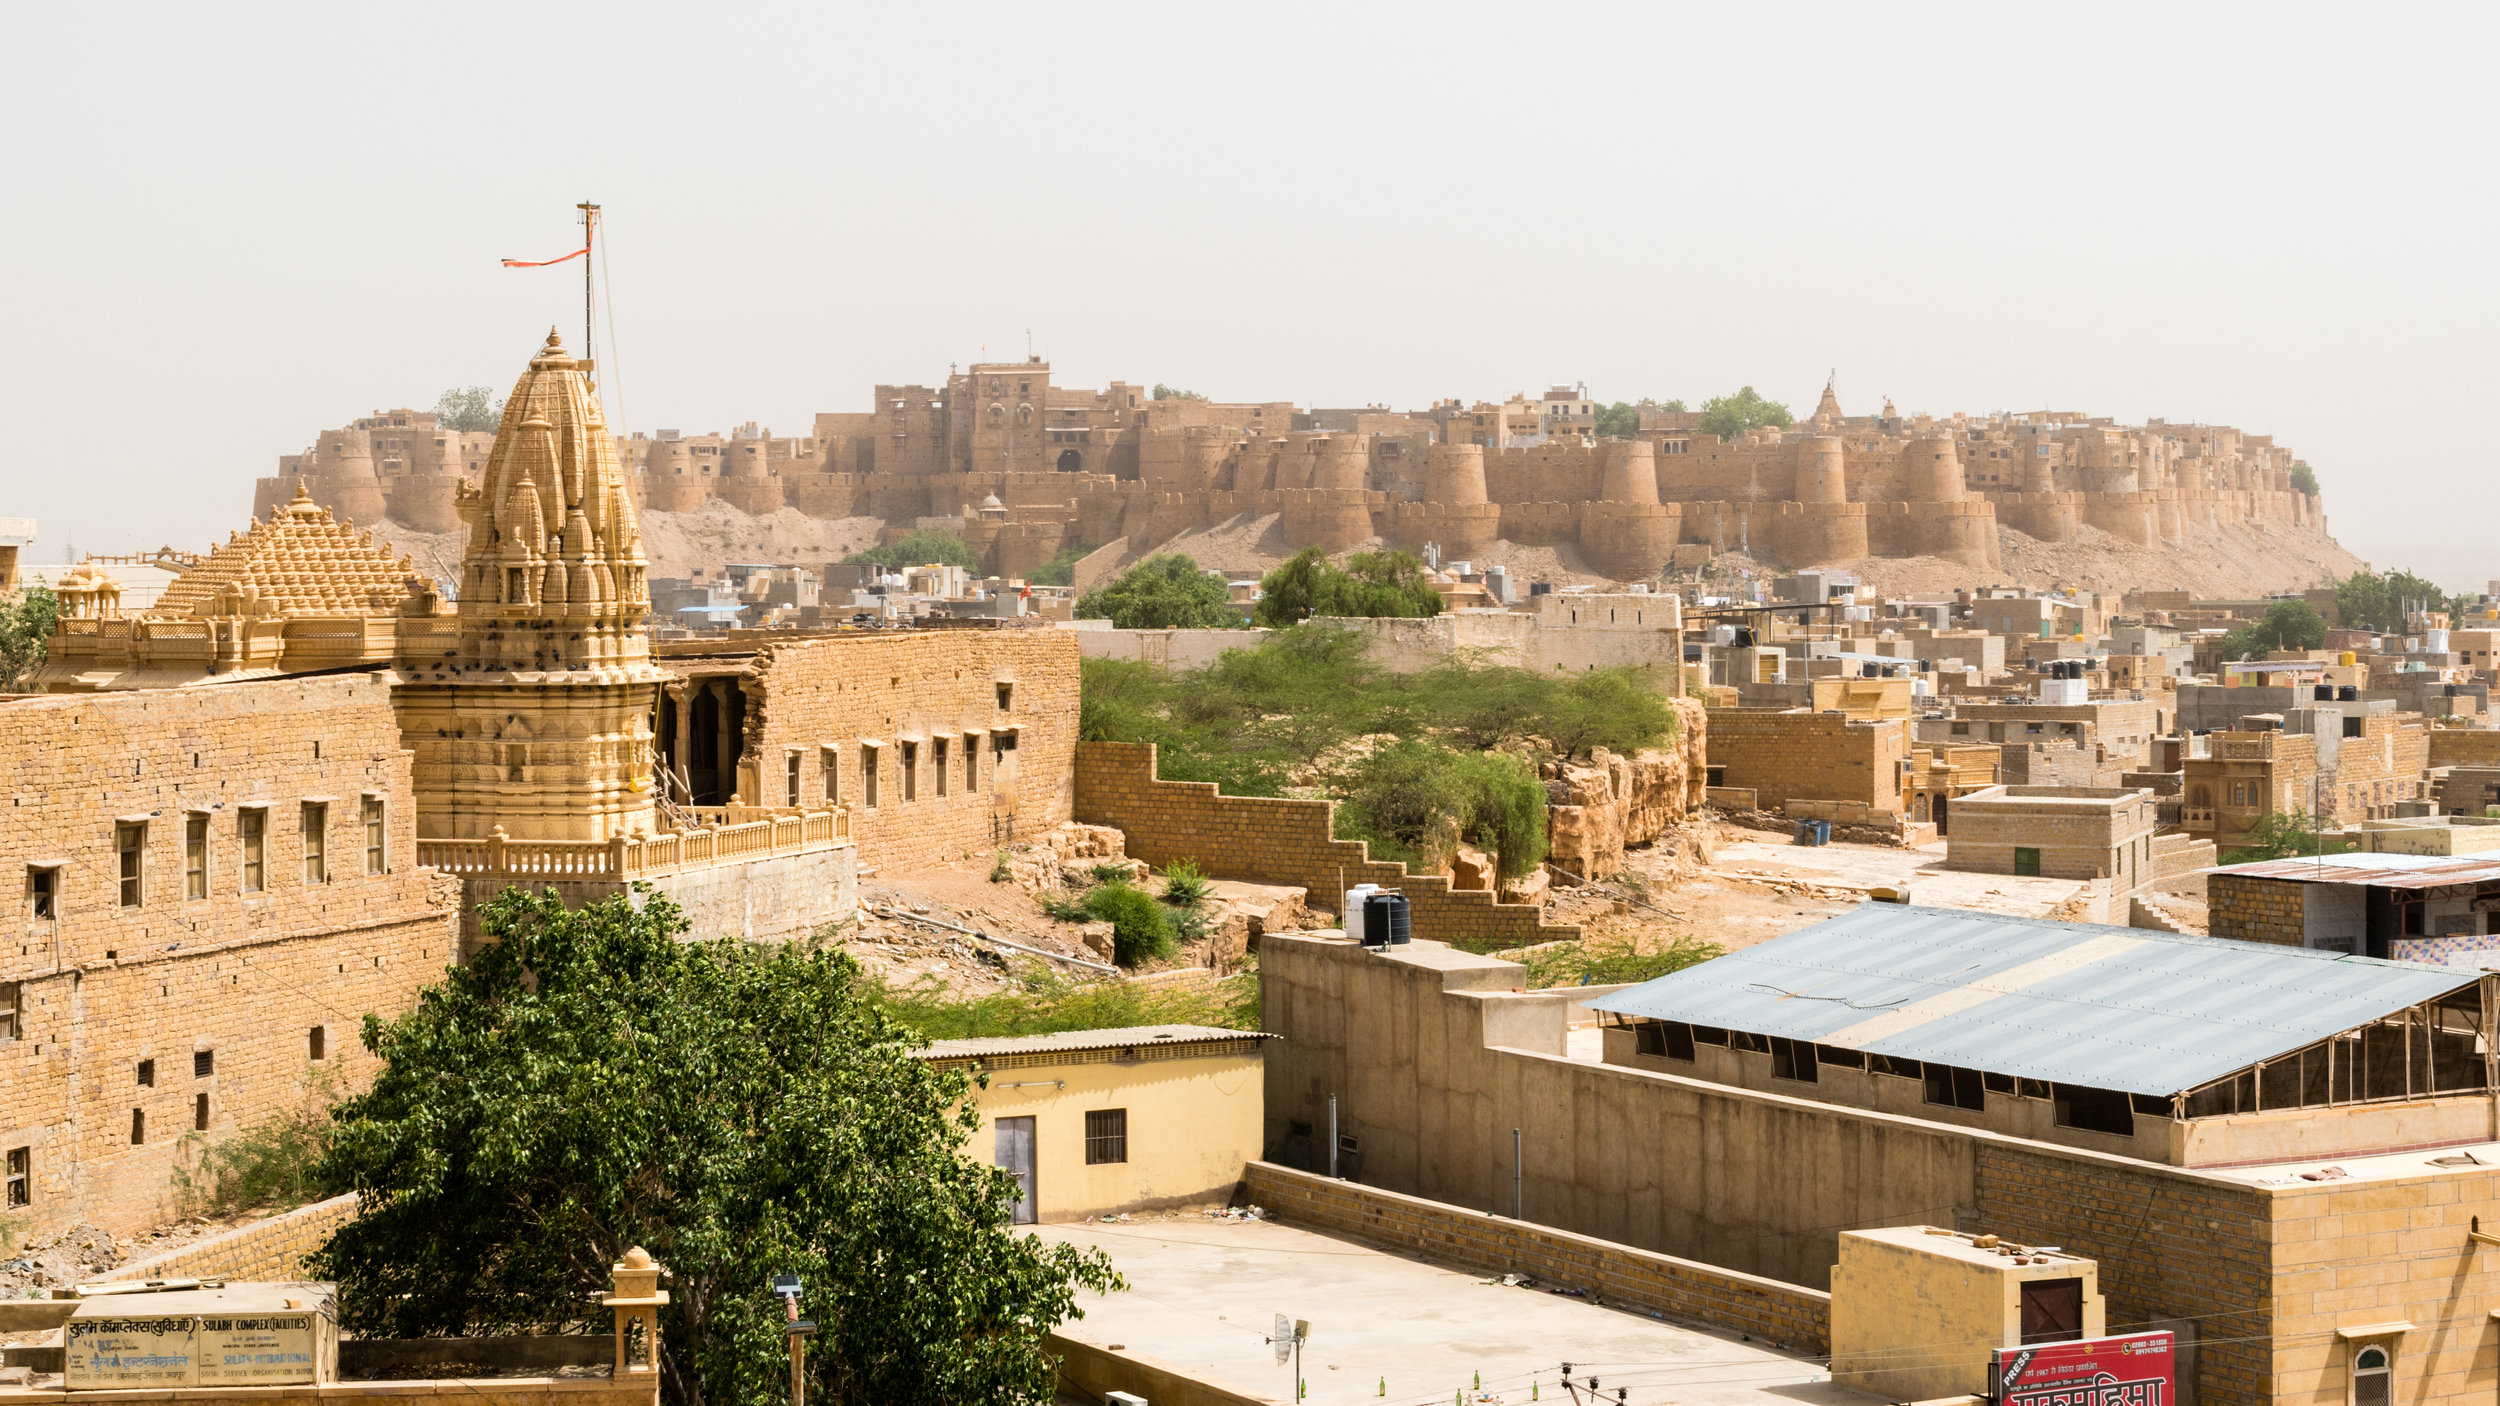 The Fort At Jaisalmer From Our Hotel Roof Terrace, India